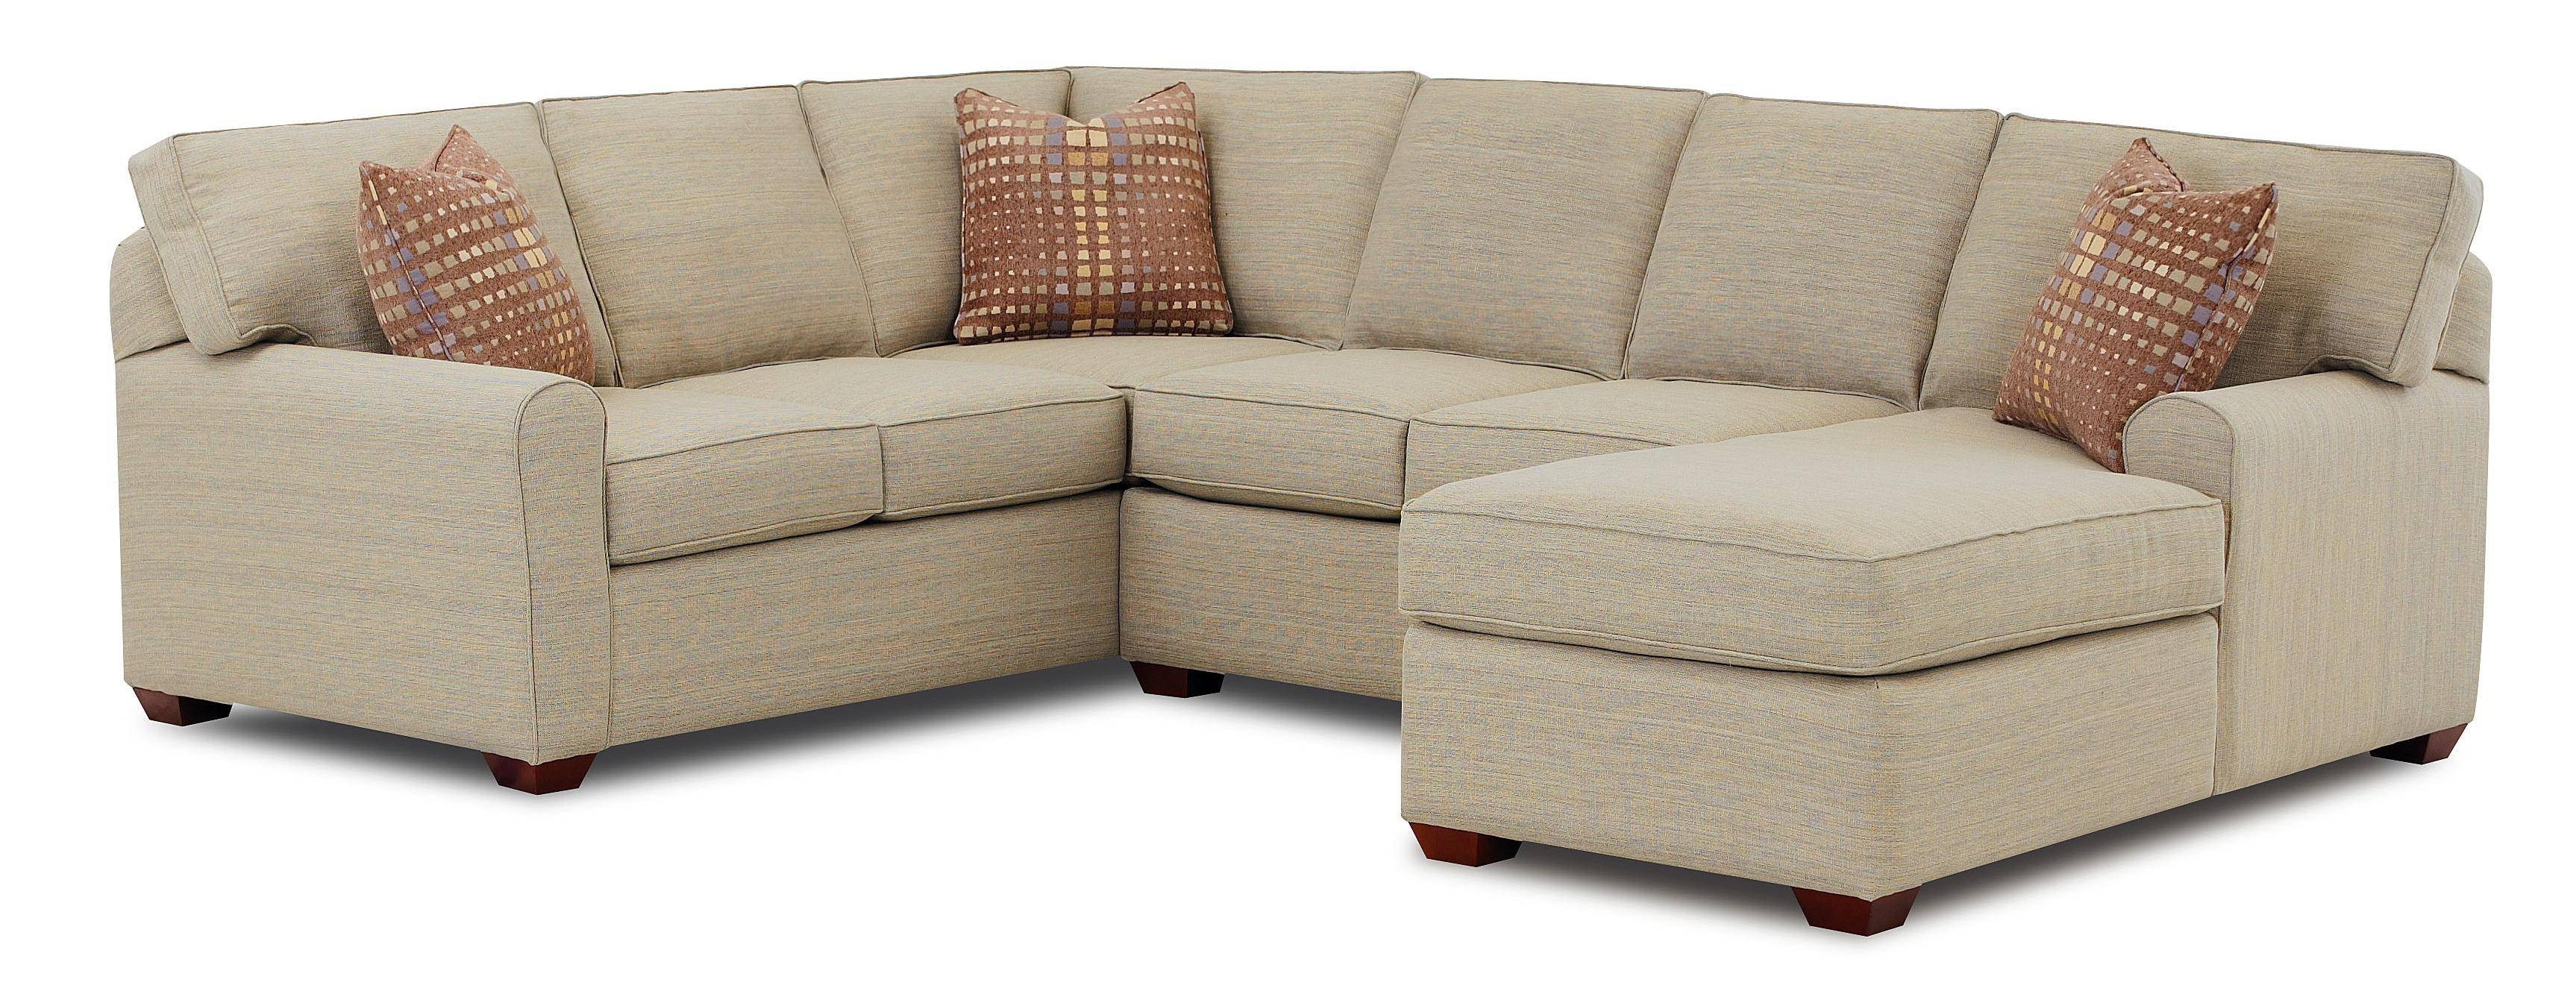 Cheap Sleeper Sofas. Cheap Sofa Sleepers Sleeper Sofa Sectional for Jennifer Sofas and Sectionals (Image 6 of 15)